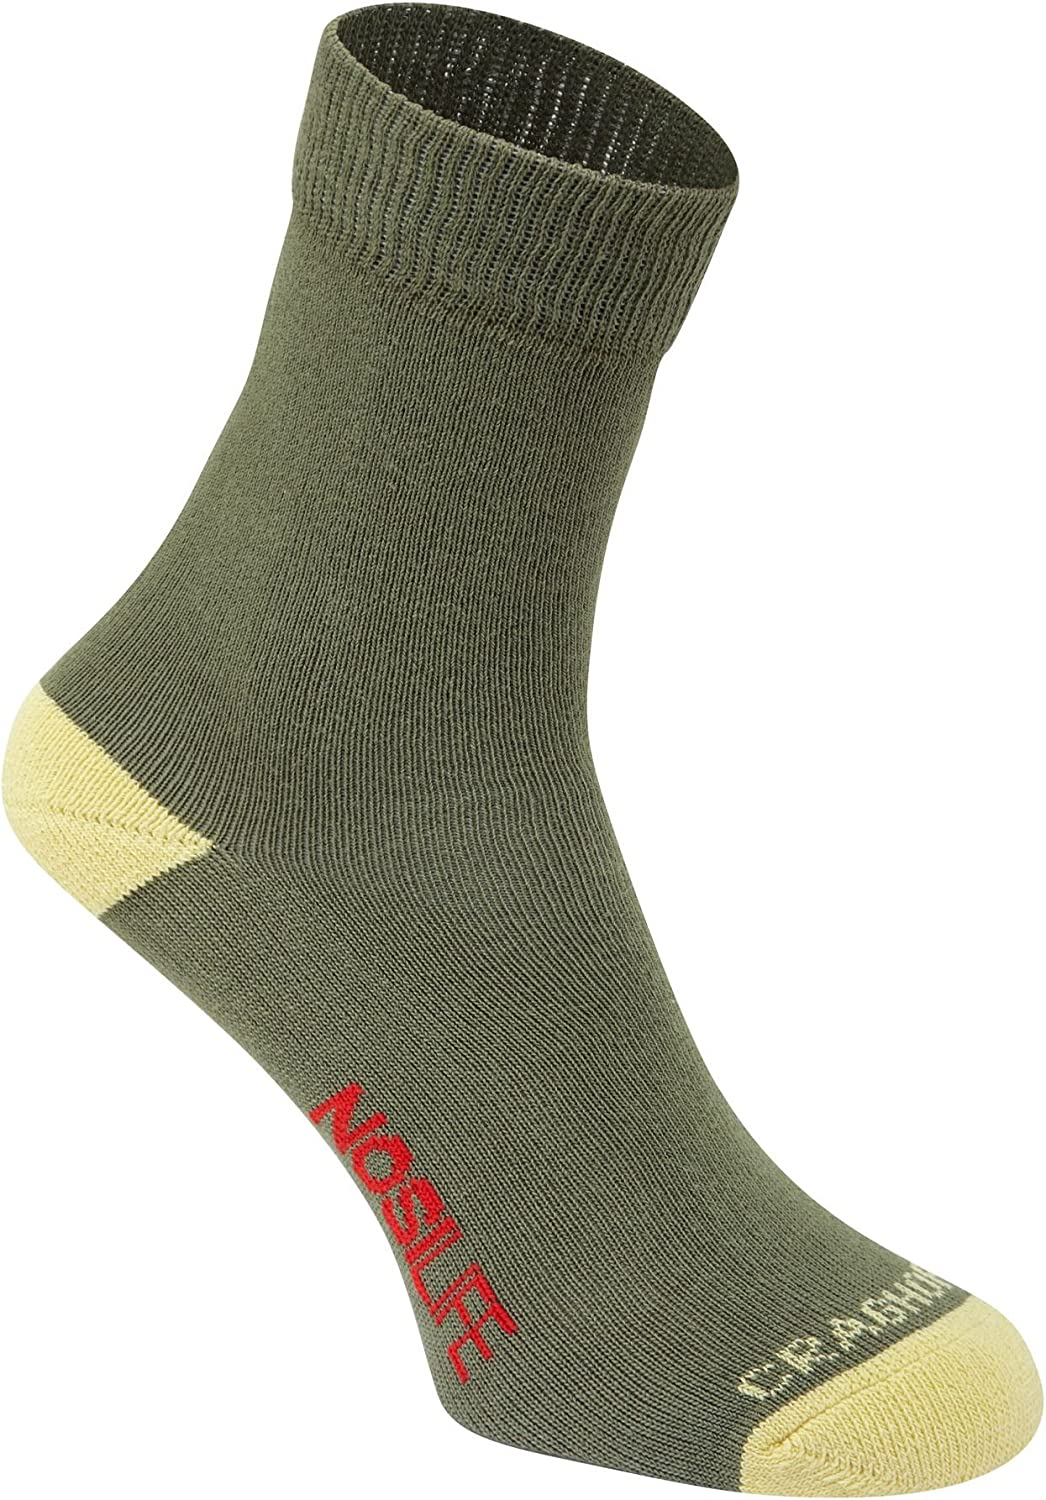 Craghoppers NosiLife Padded Travel Socks Twin Pack